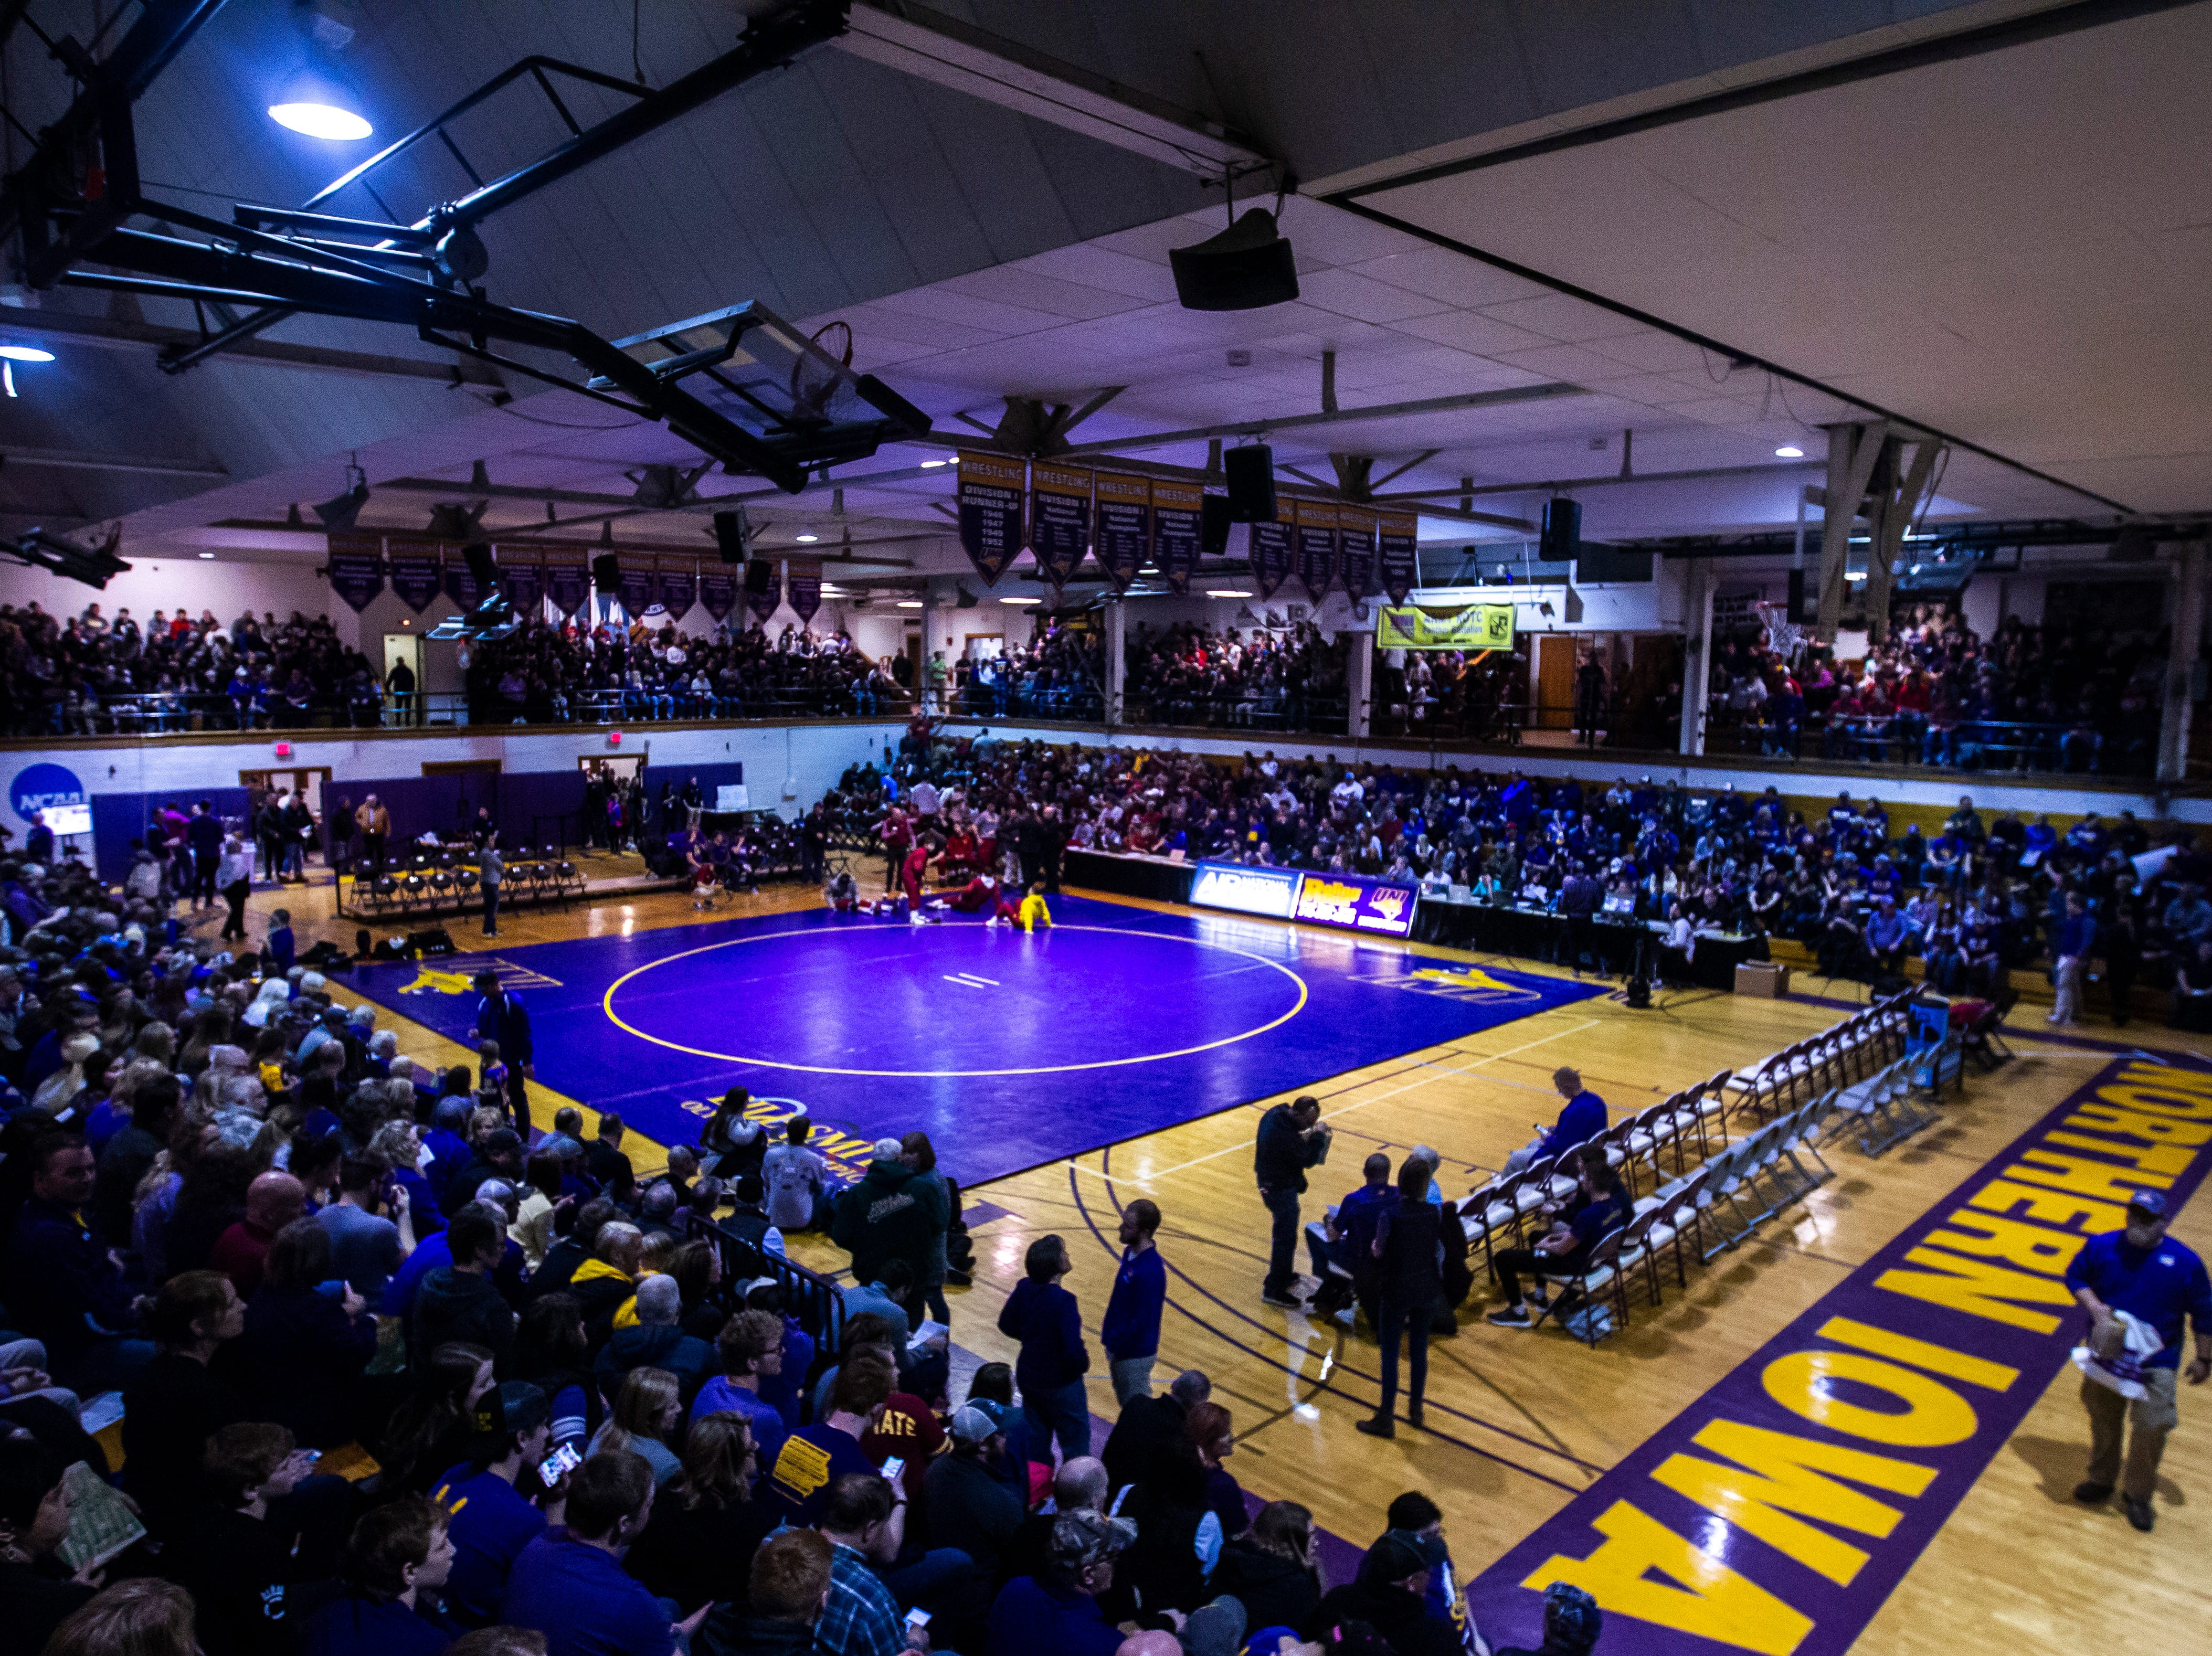 Fans get settled before a NCAA Big 12 wrestling dual on Thursday, Feb. 21, 2019 at the West Gymnasium in Cedar Falls, Iowa.